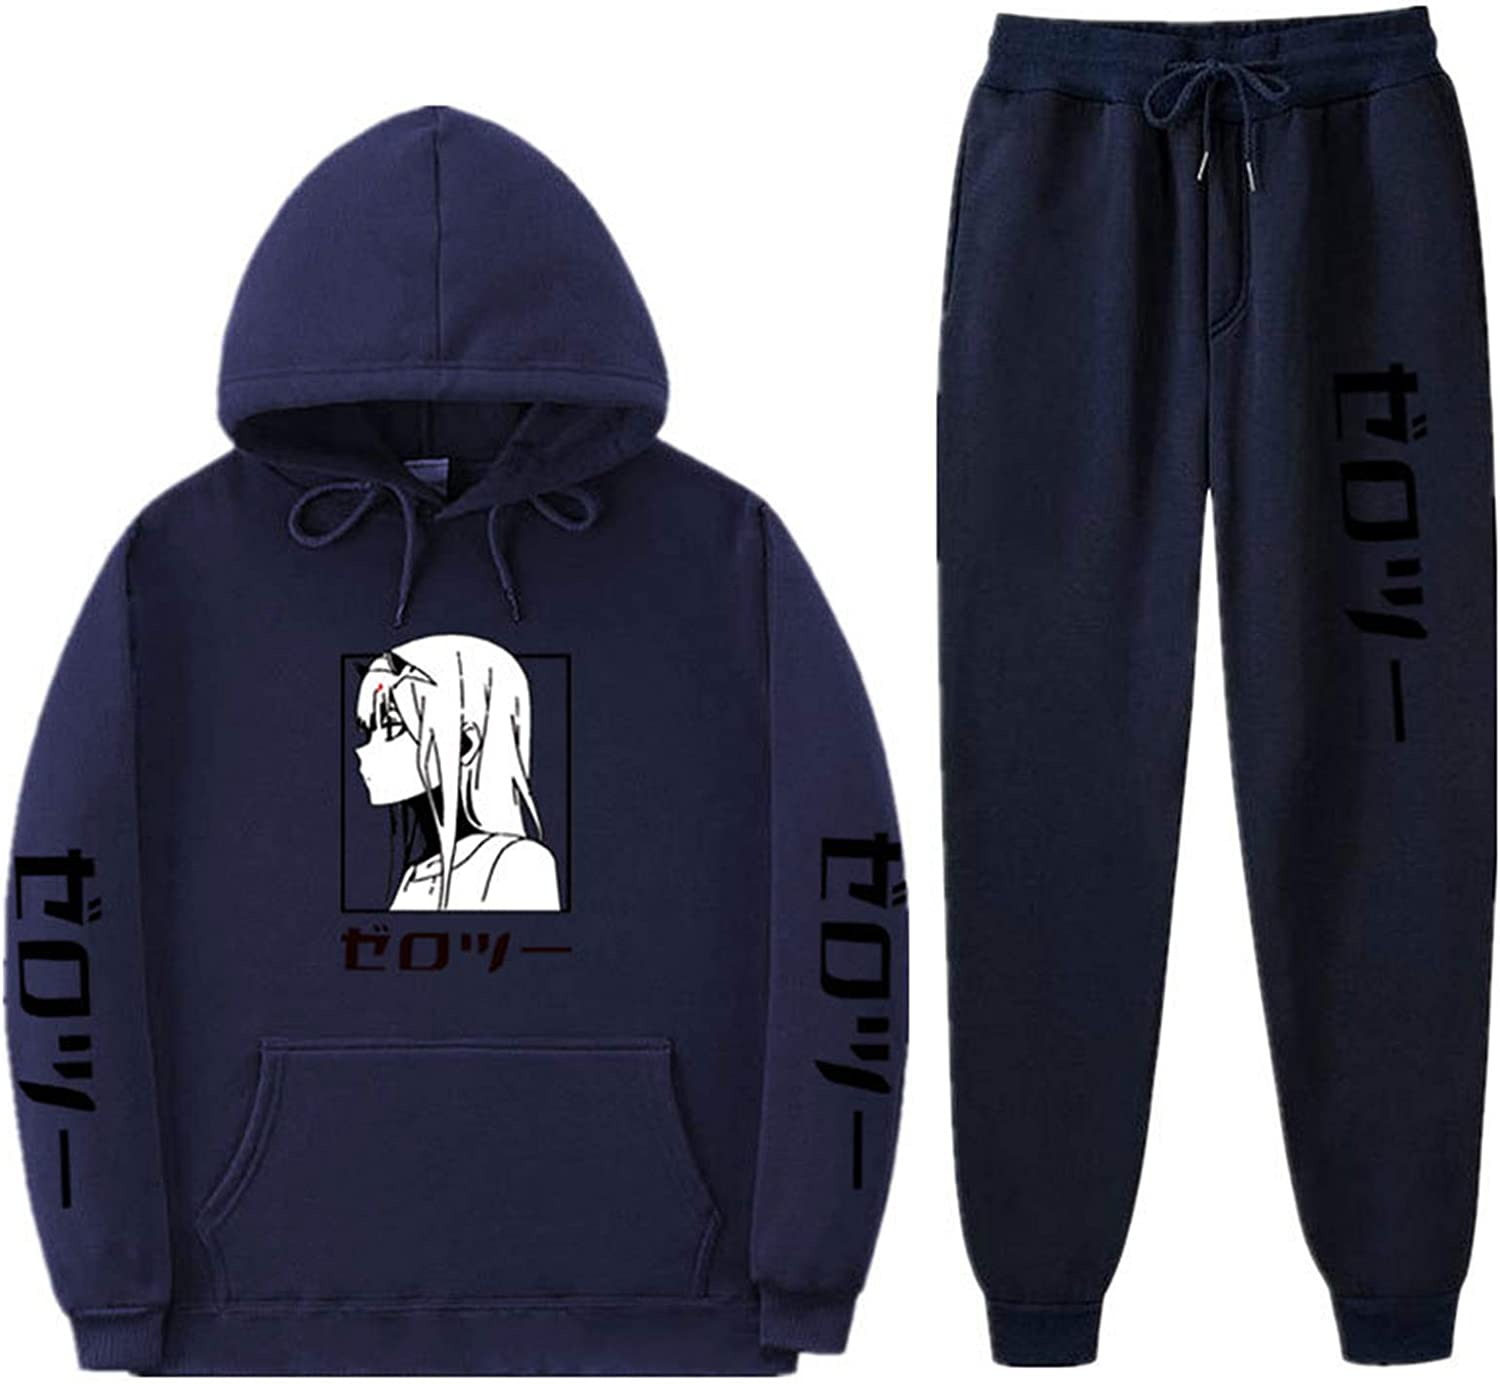 Anime 02 Hoodie and Sweatpants 2 Piece Set Cosplay Costume Zero Two Sportswear for Men Women Teens Darling in The Franxx Tracksuit Set